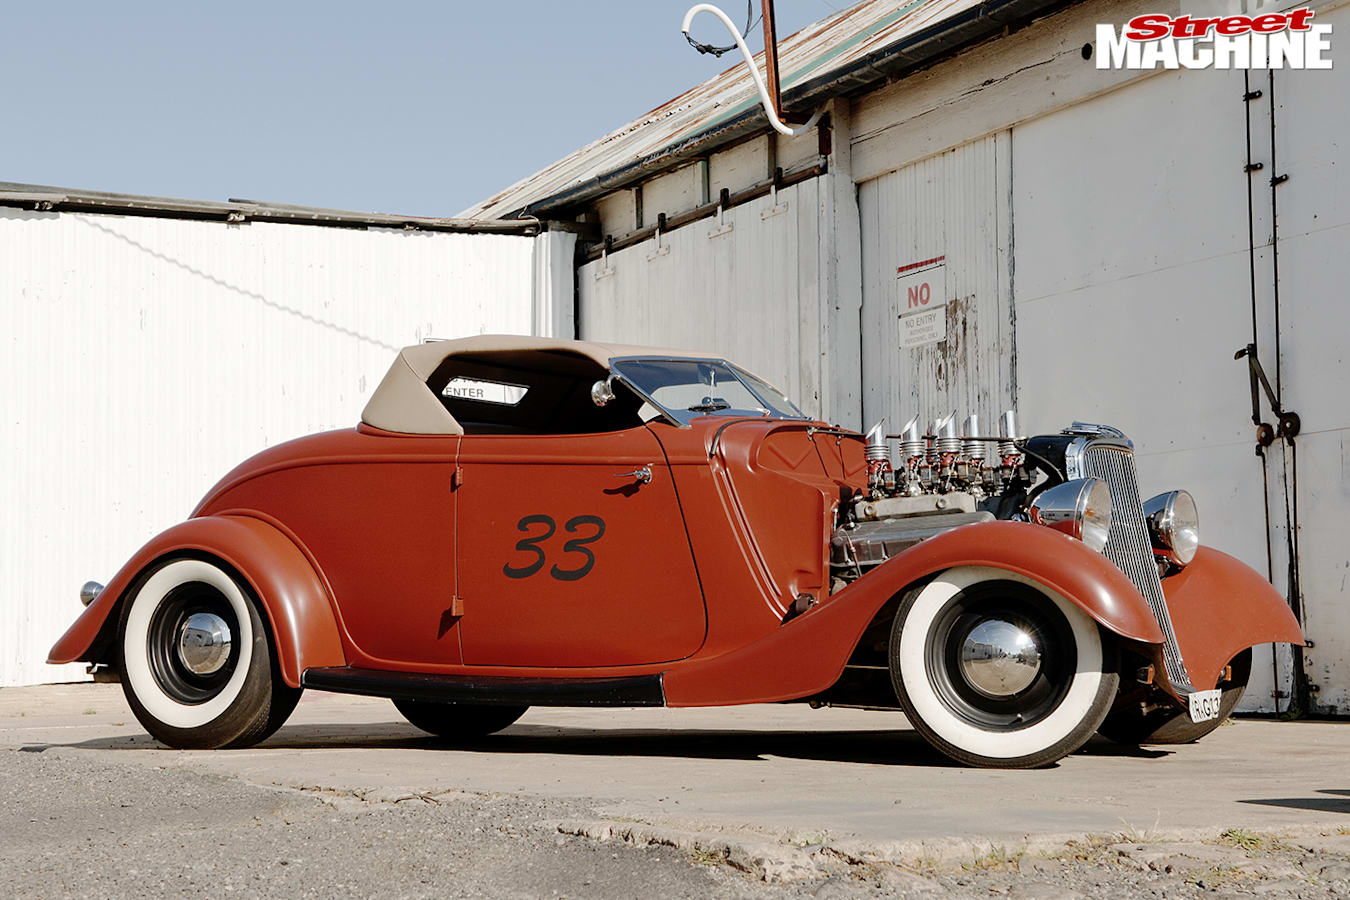 Street Machine Features Townsend Family Hot Rods 9